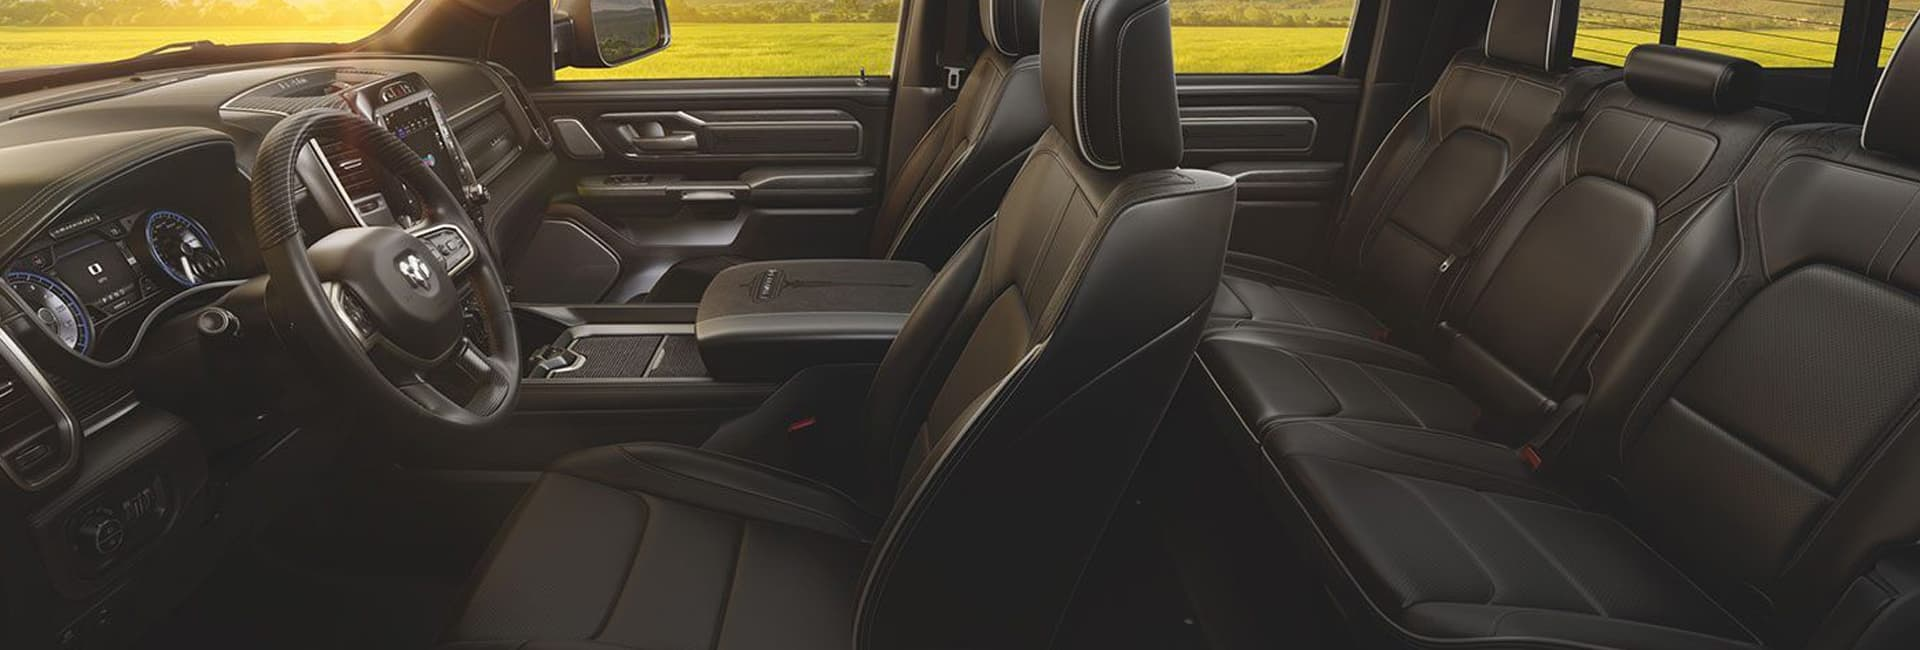 Interior image of the 2020 Ram 1500